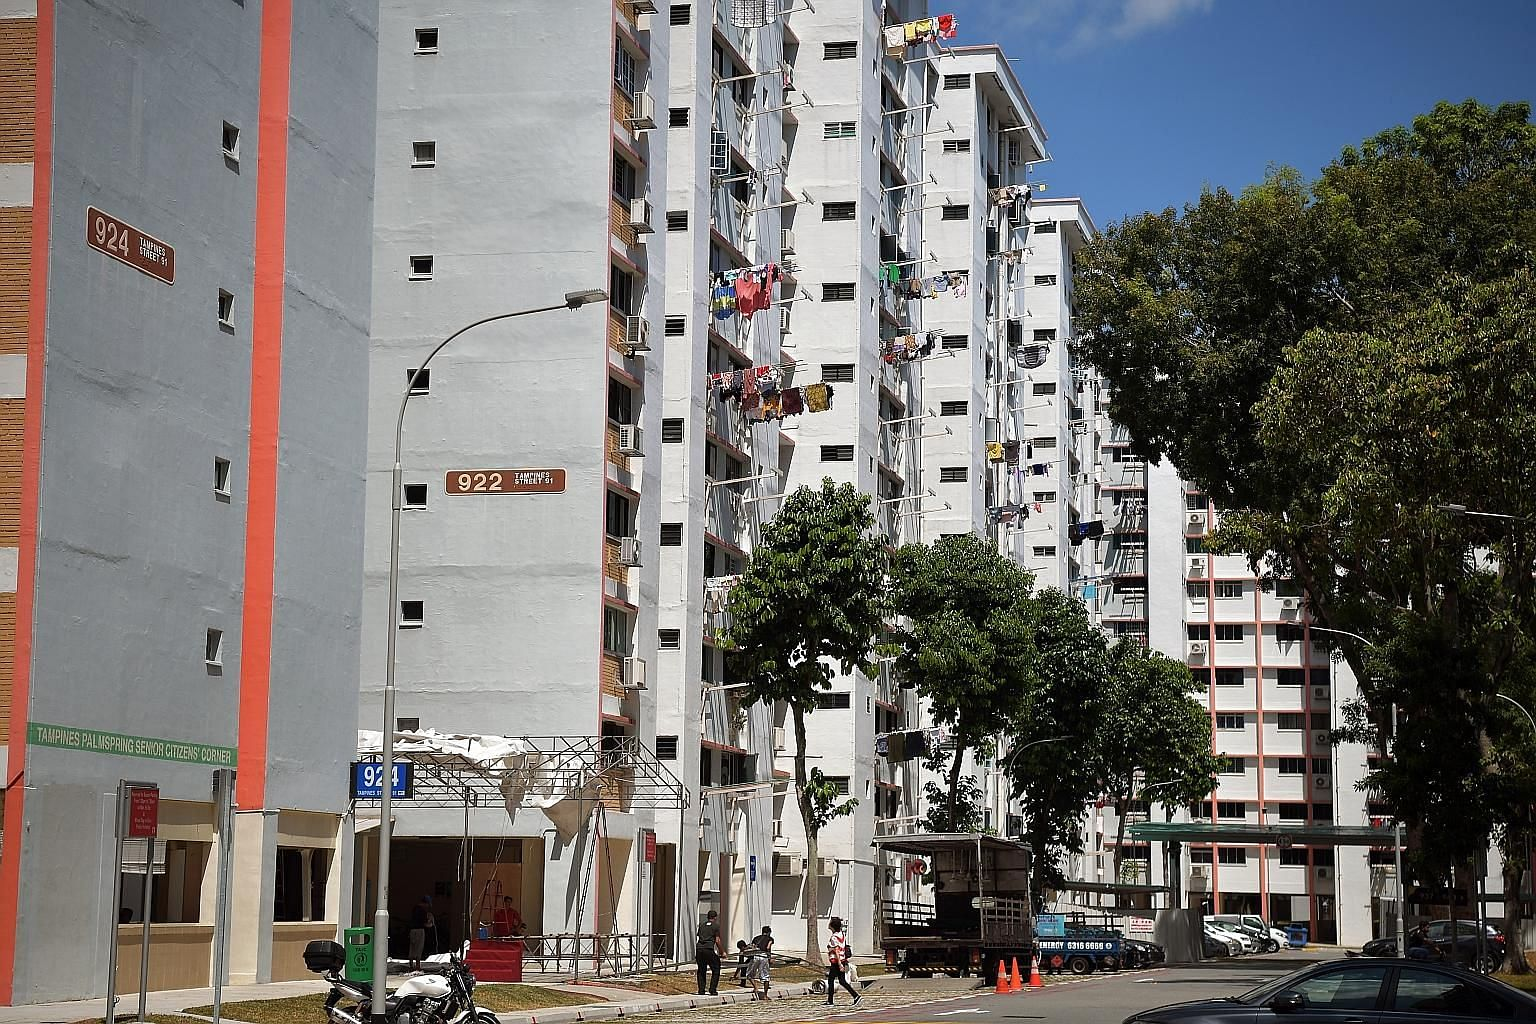 With the changes that kicked in yesterday, buyers can now buy flats with less than 60 years left on the lease without any Central Provident Fund restrictions, as long as the lease lasts them till age 95. They would also be entitled to the maximum HDB